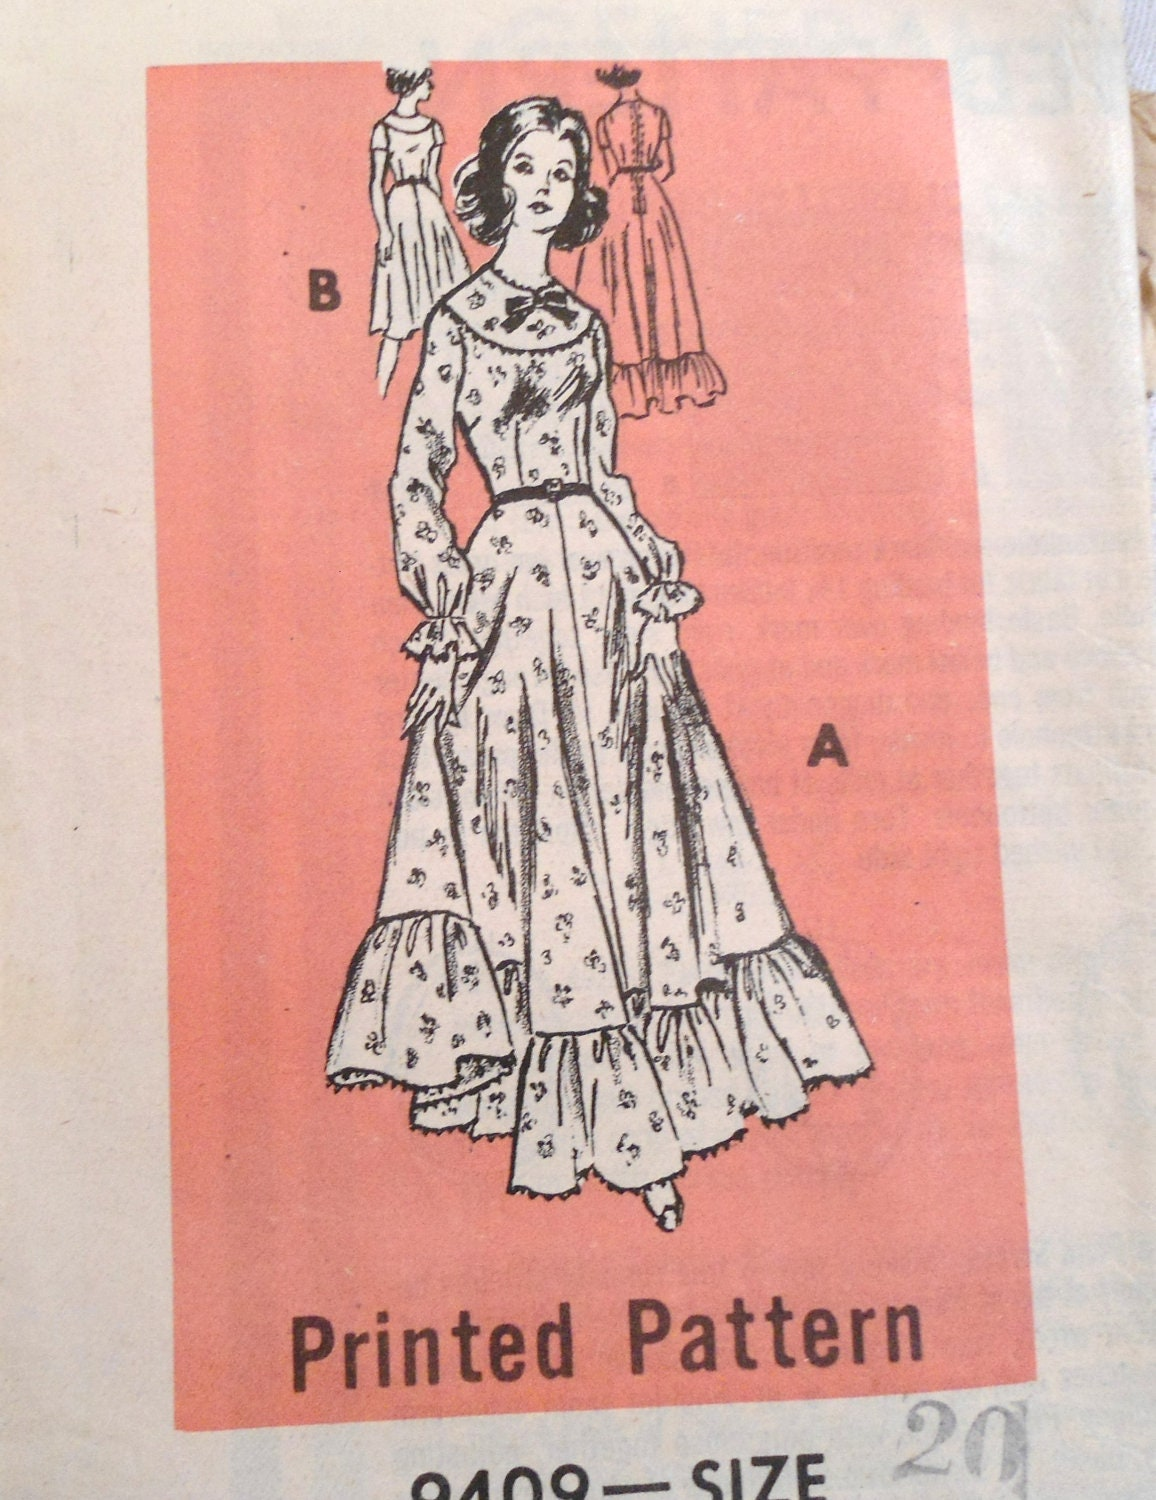 1975 Gunny Sack Dress Vintage Mail Order Pattern 9409 size 20